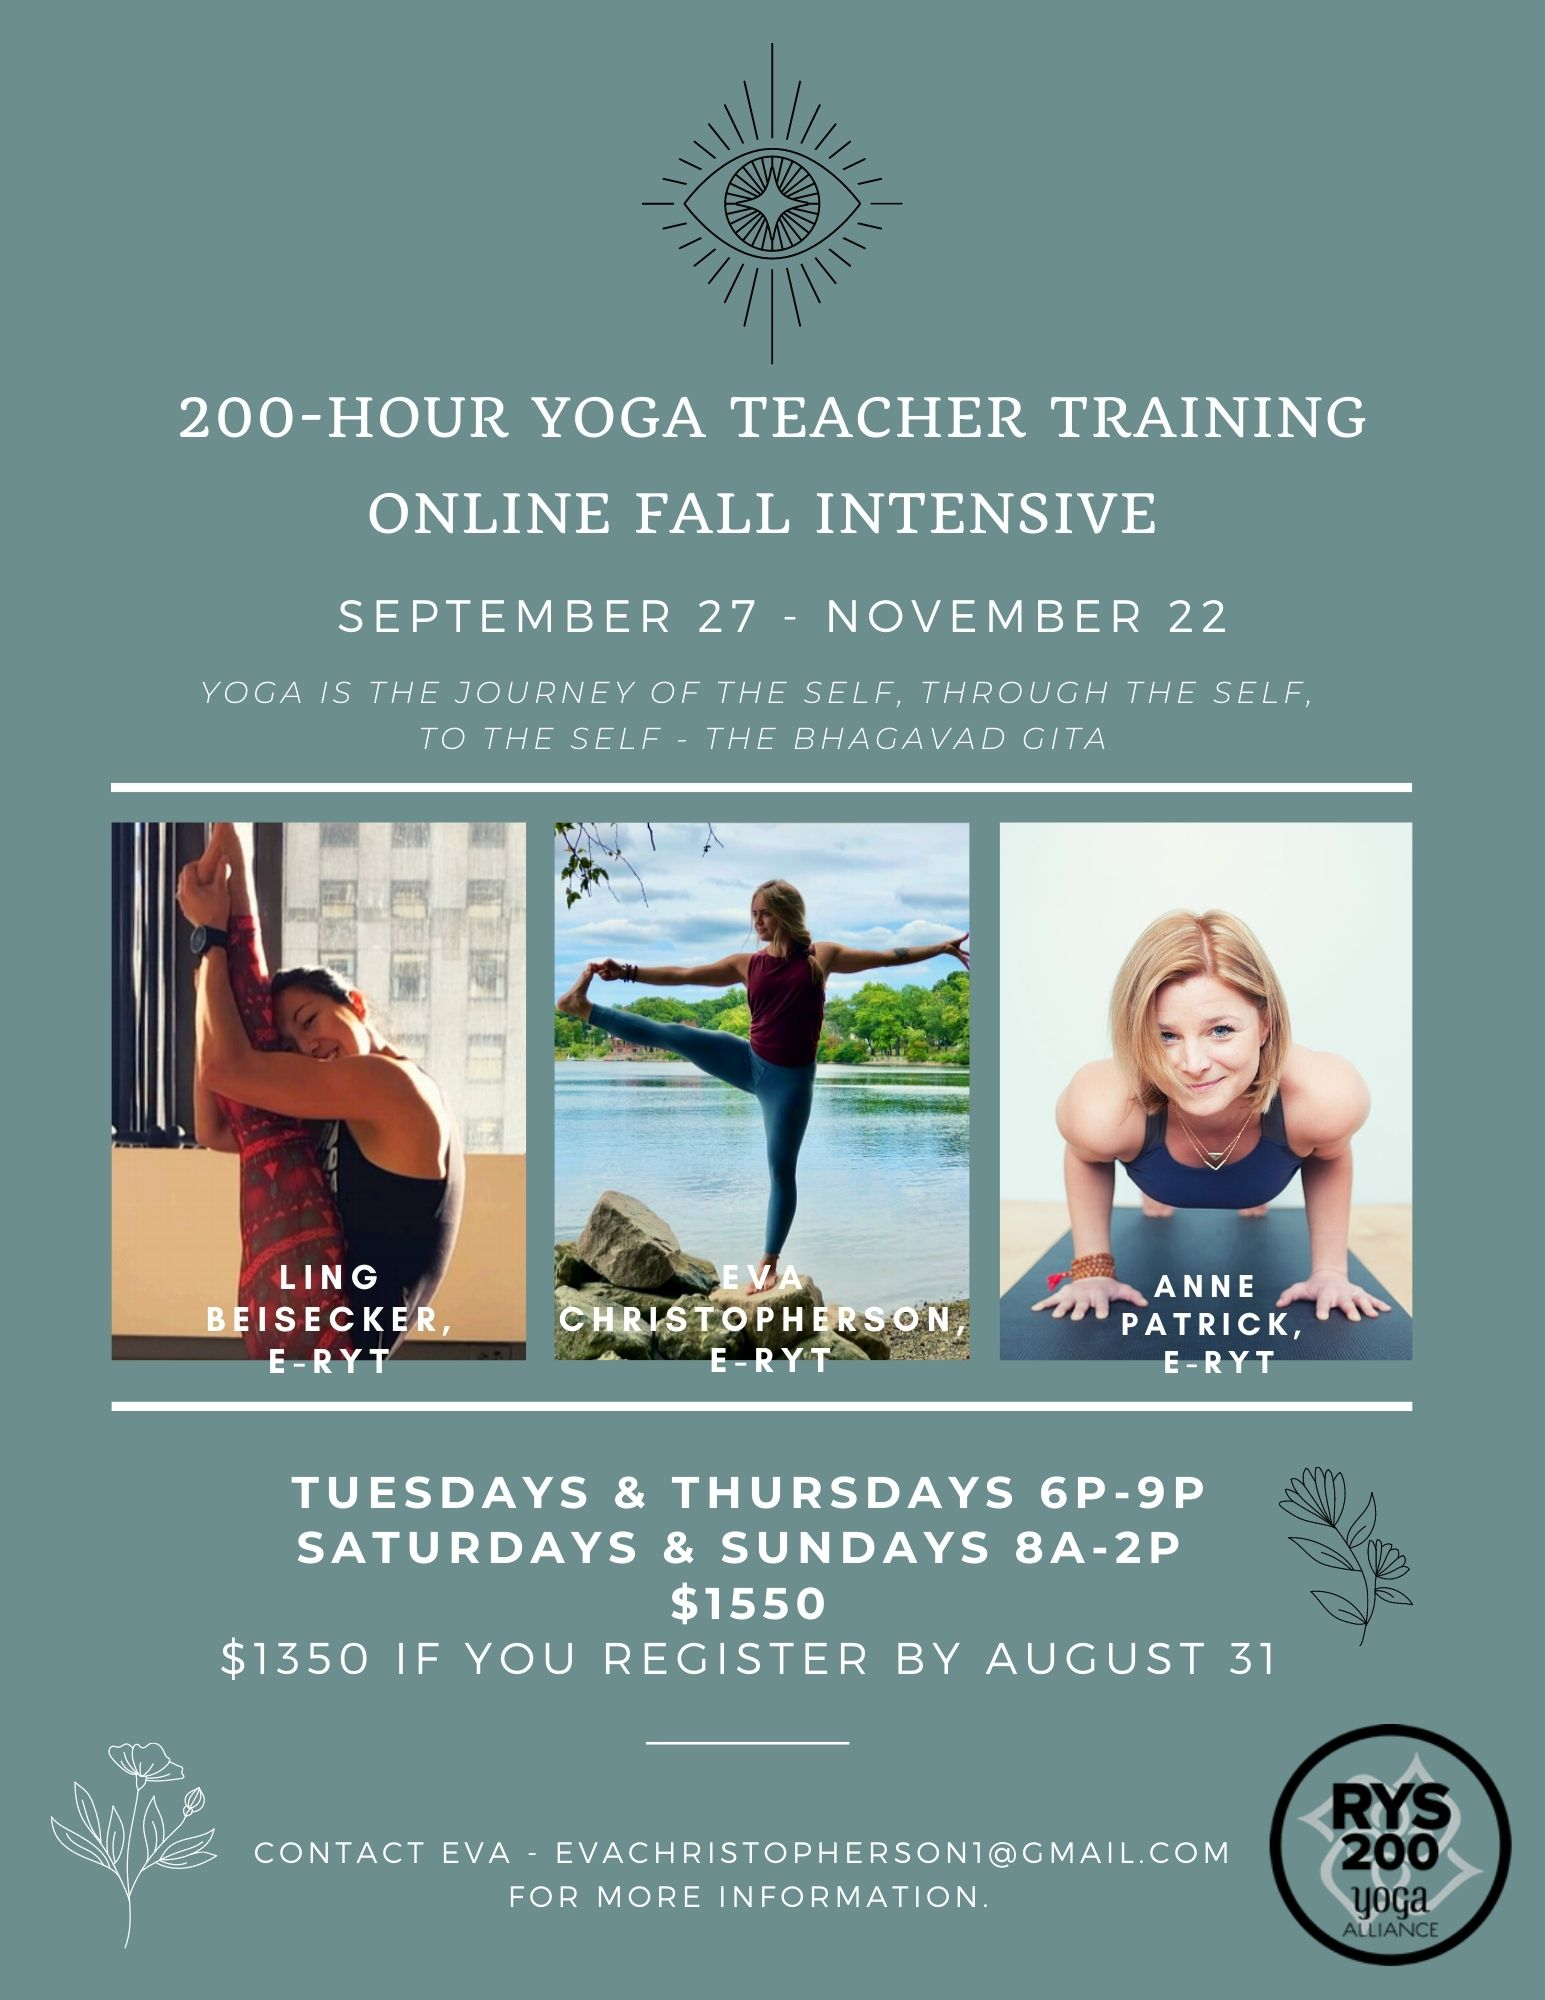 Free Yoga Class And Q A For 200 Hour Online Yoga Teacher Training Fall Intensive 08 28 20